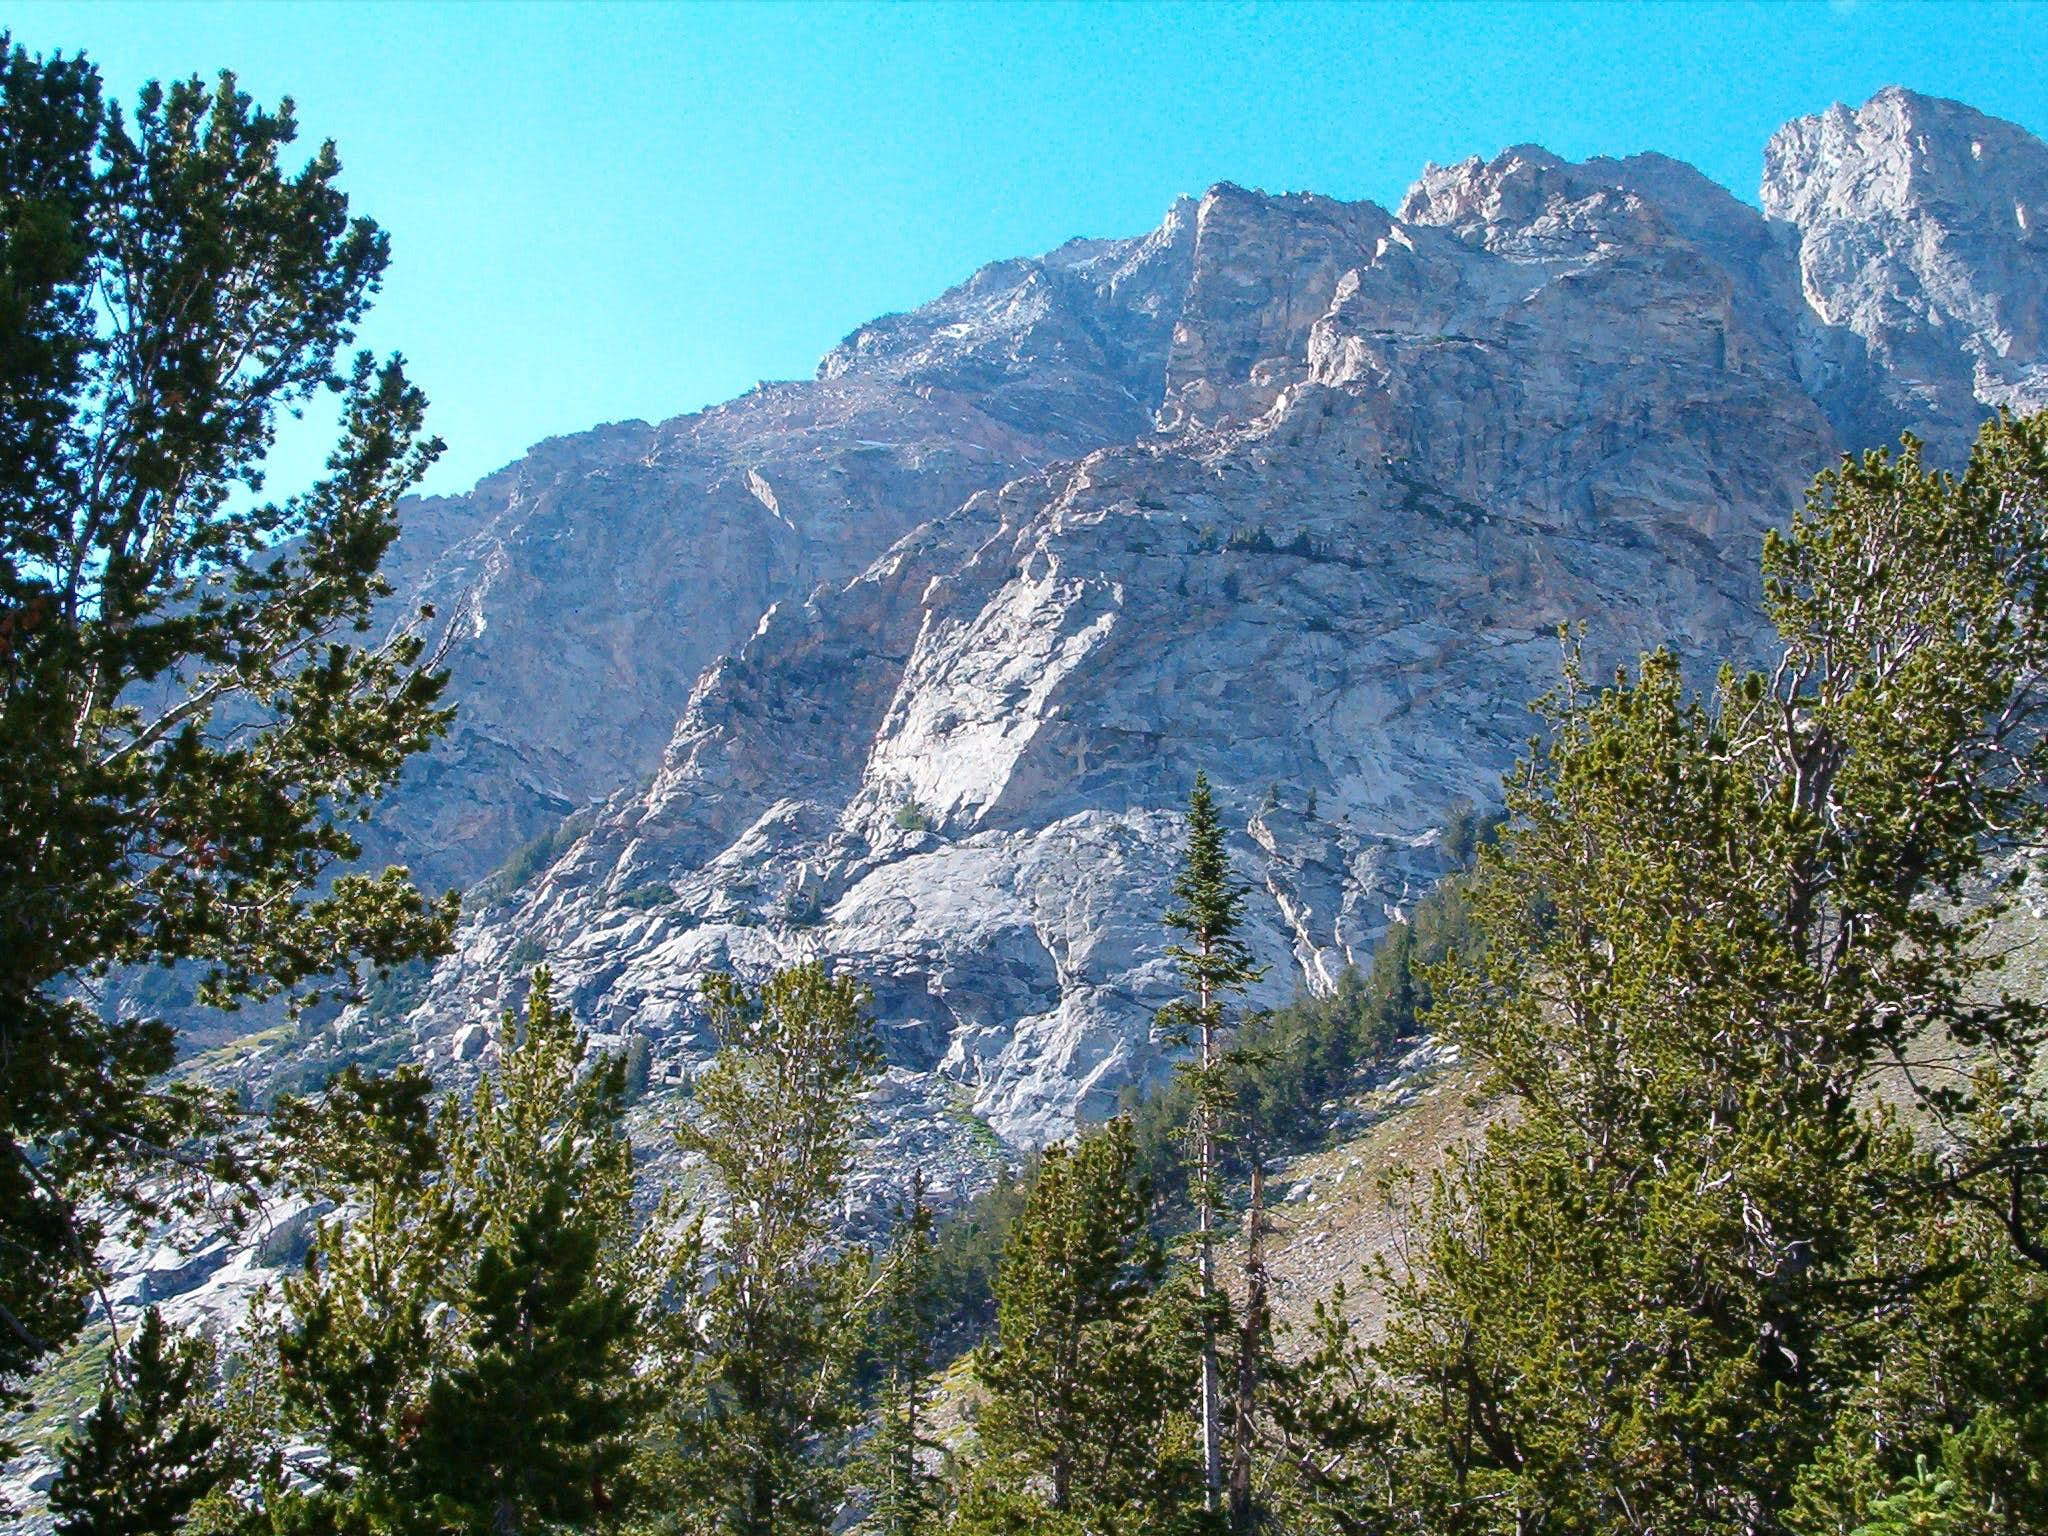 Matternought Peak